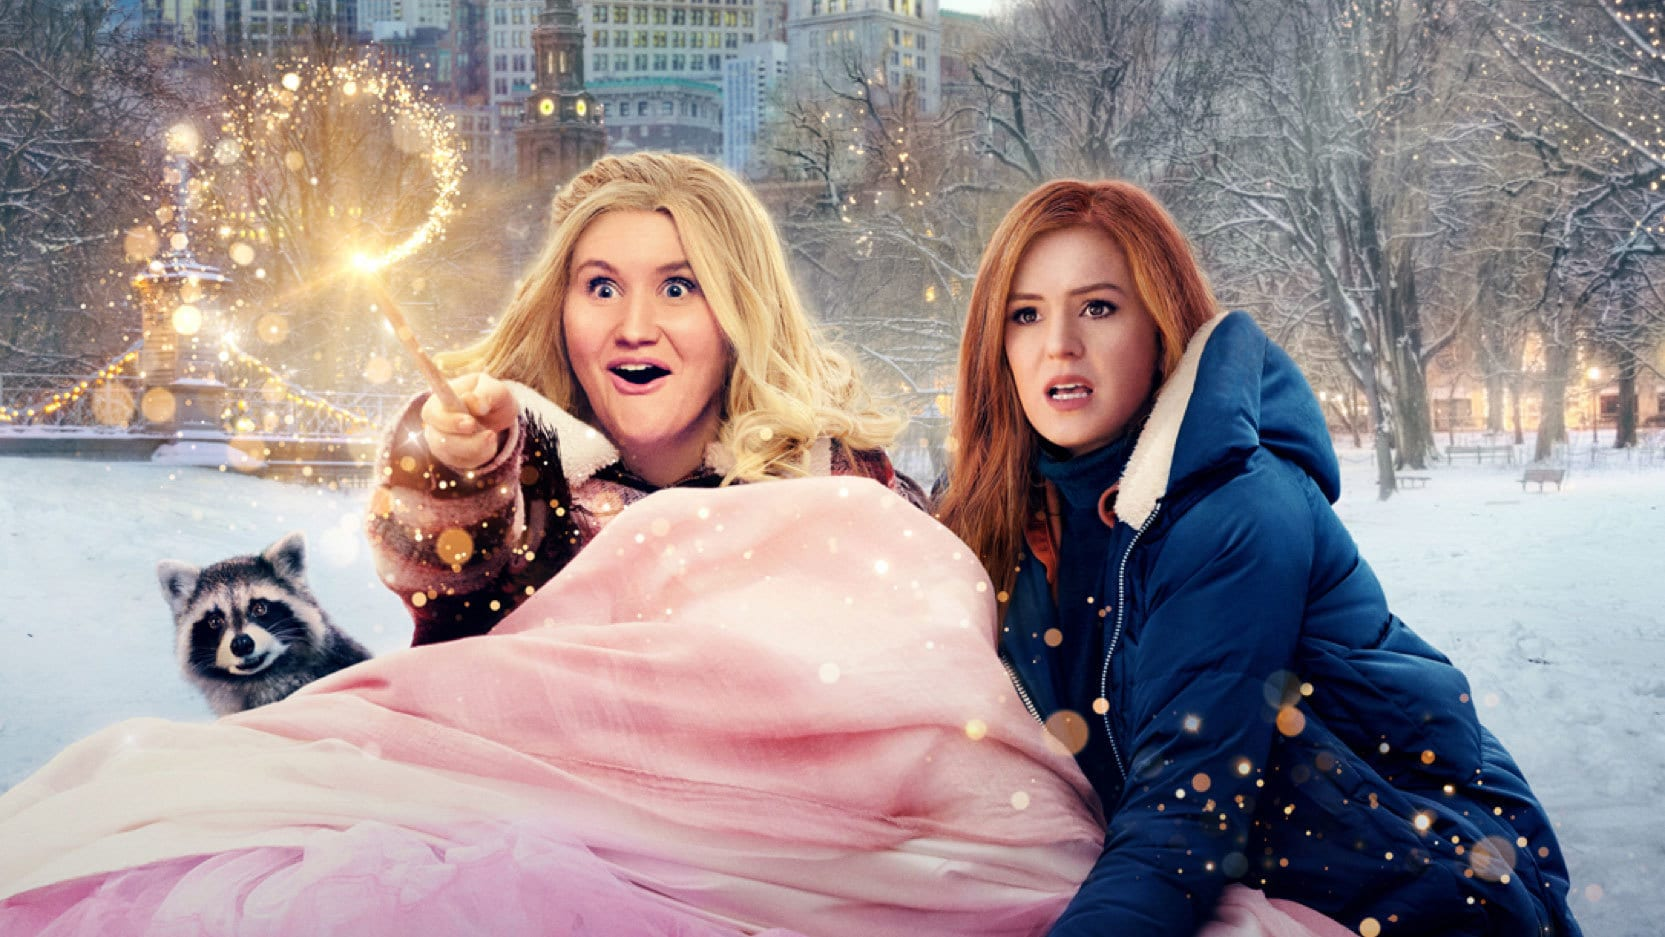 """Disney+ releases trailer for its magical holiday comedy """"Godmothered,"""" premiering December 4 on Disney+"""